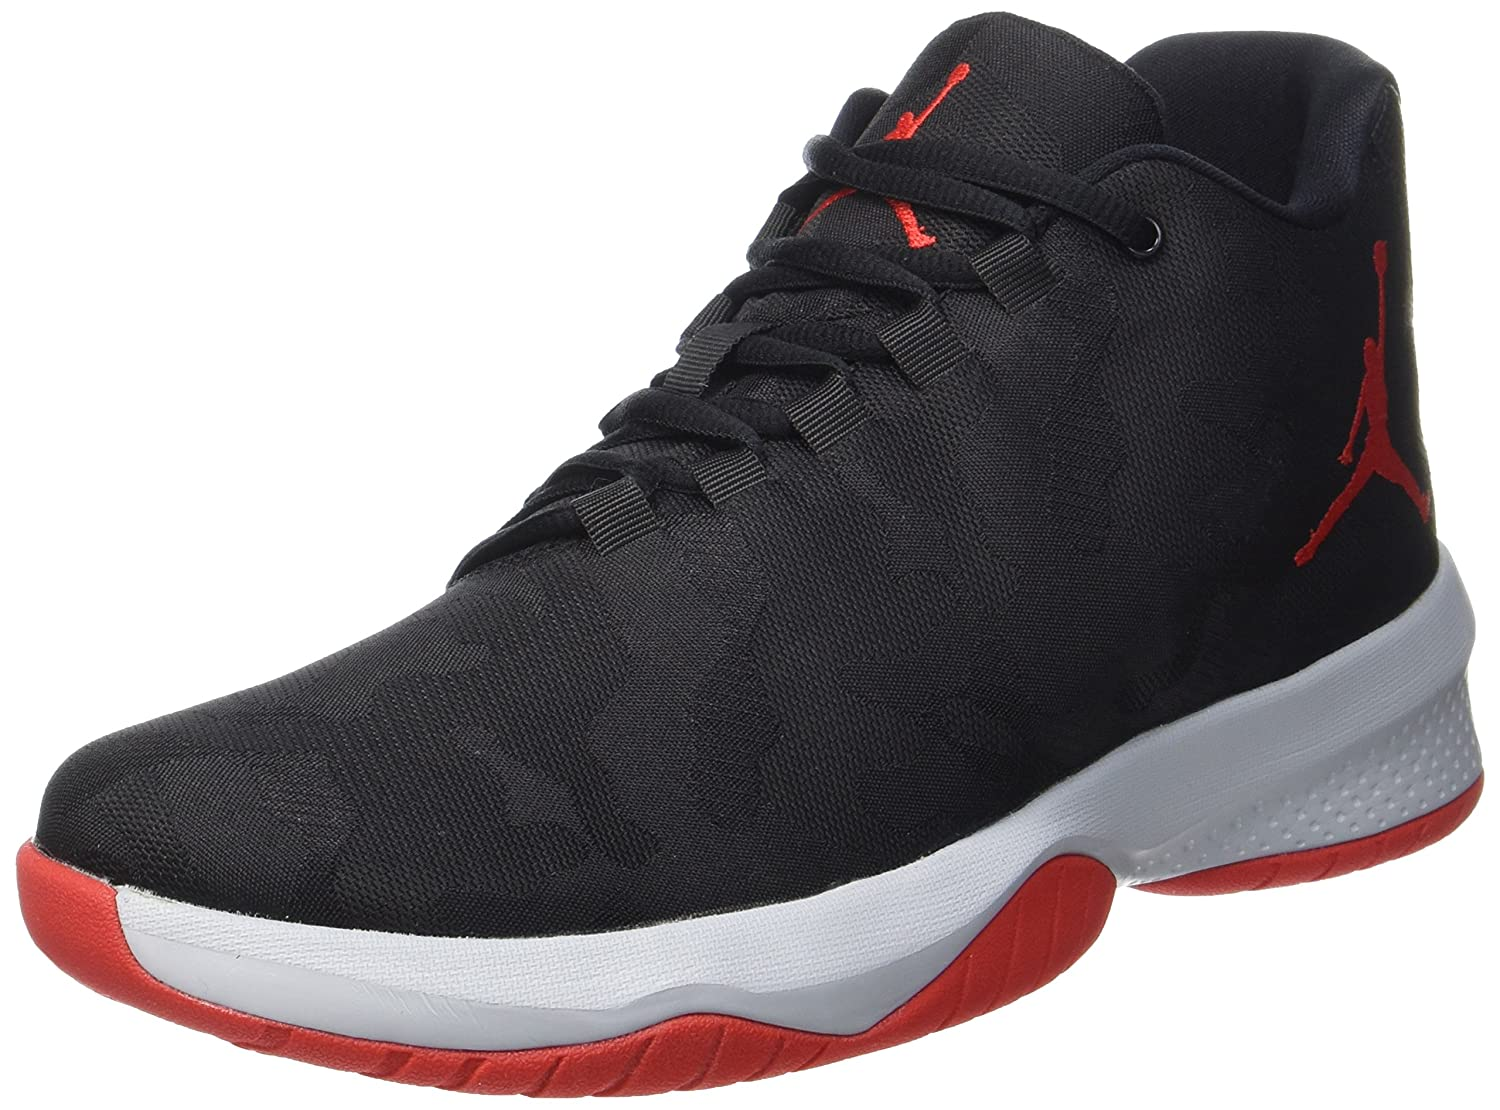 db61af59141379 Nike Men s Jordan B. Fly Basketball Shoes  Amazon.co.uk  Shoes   Bags